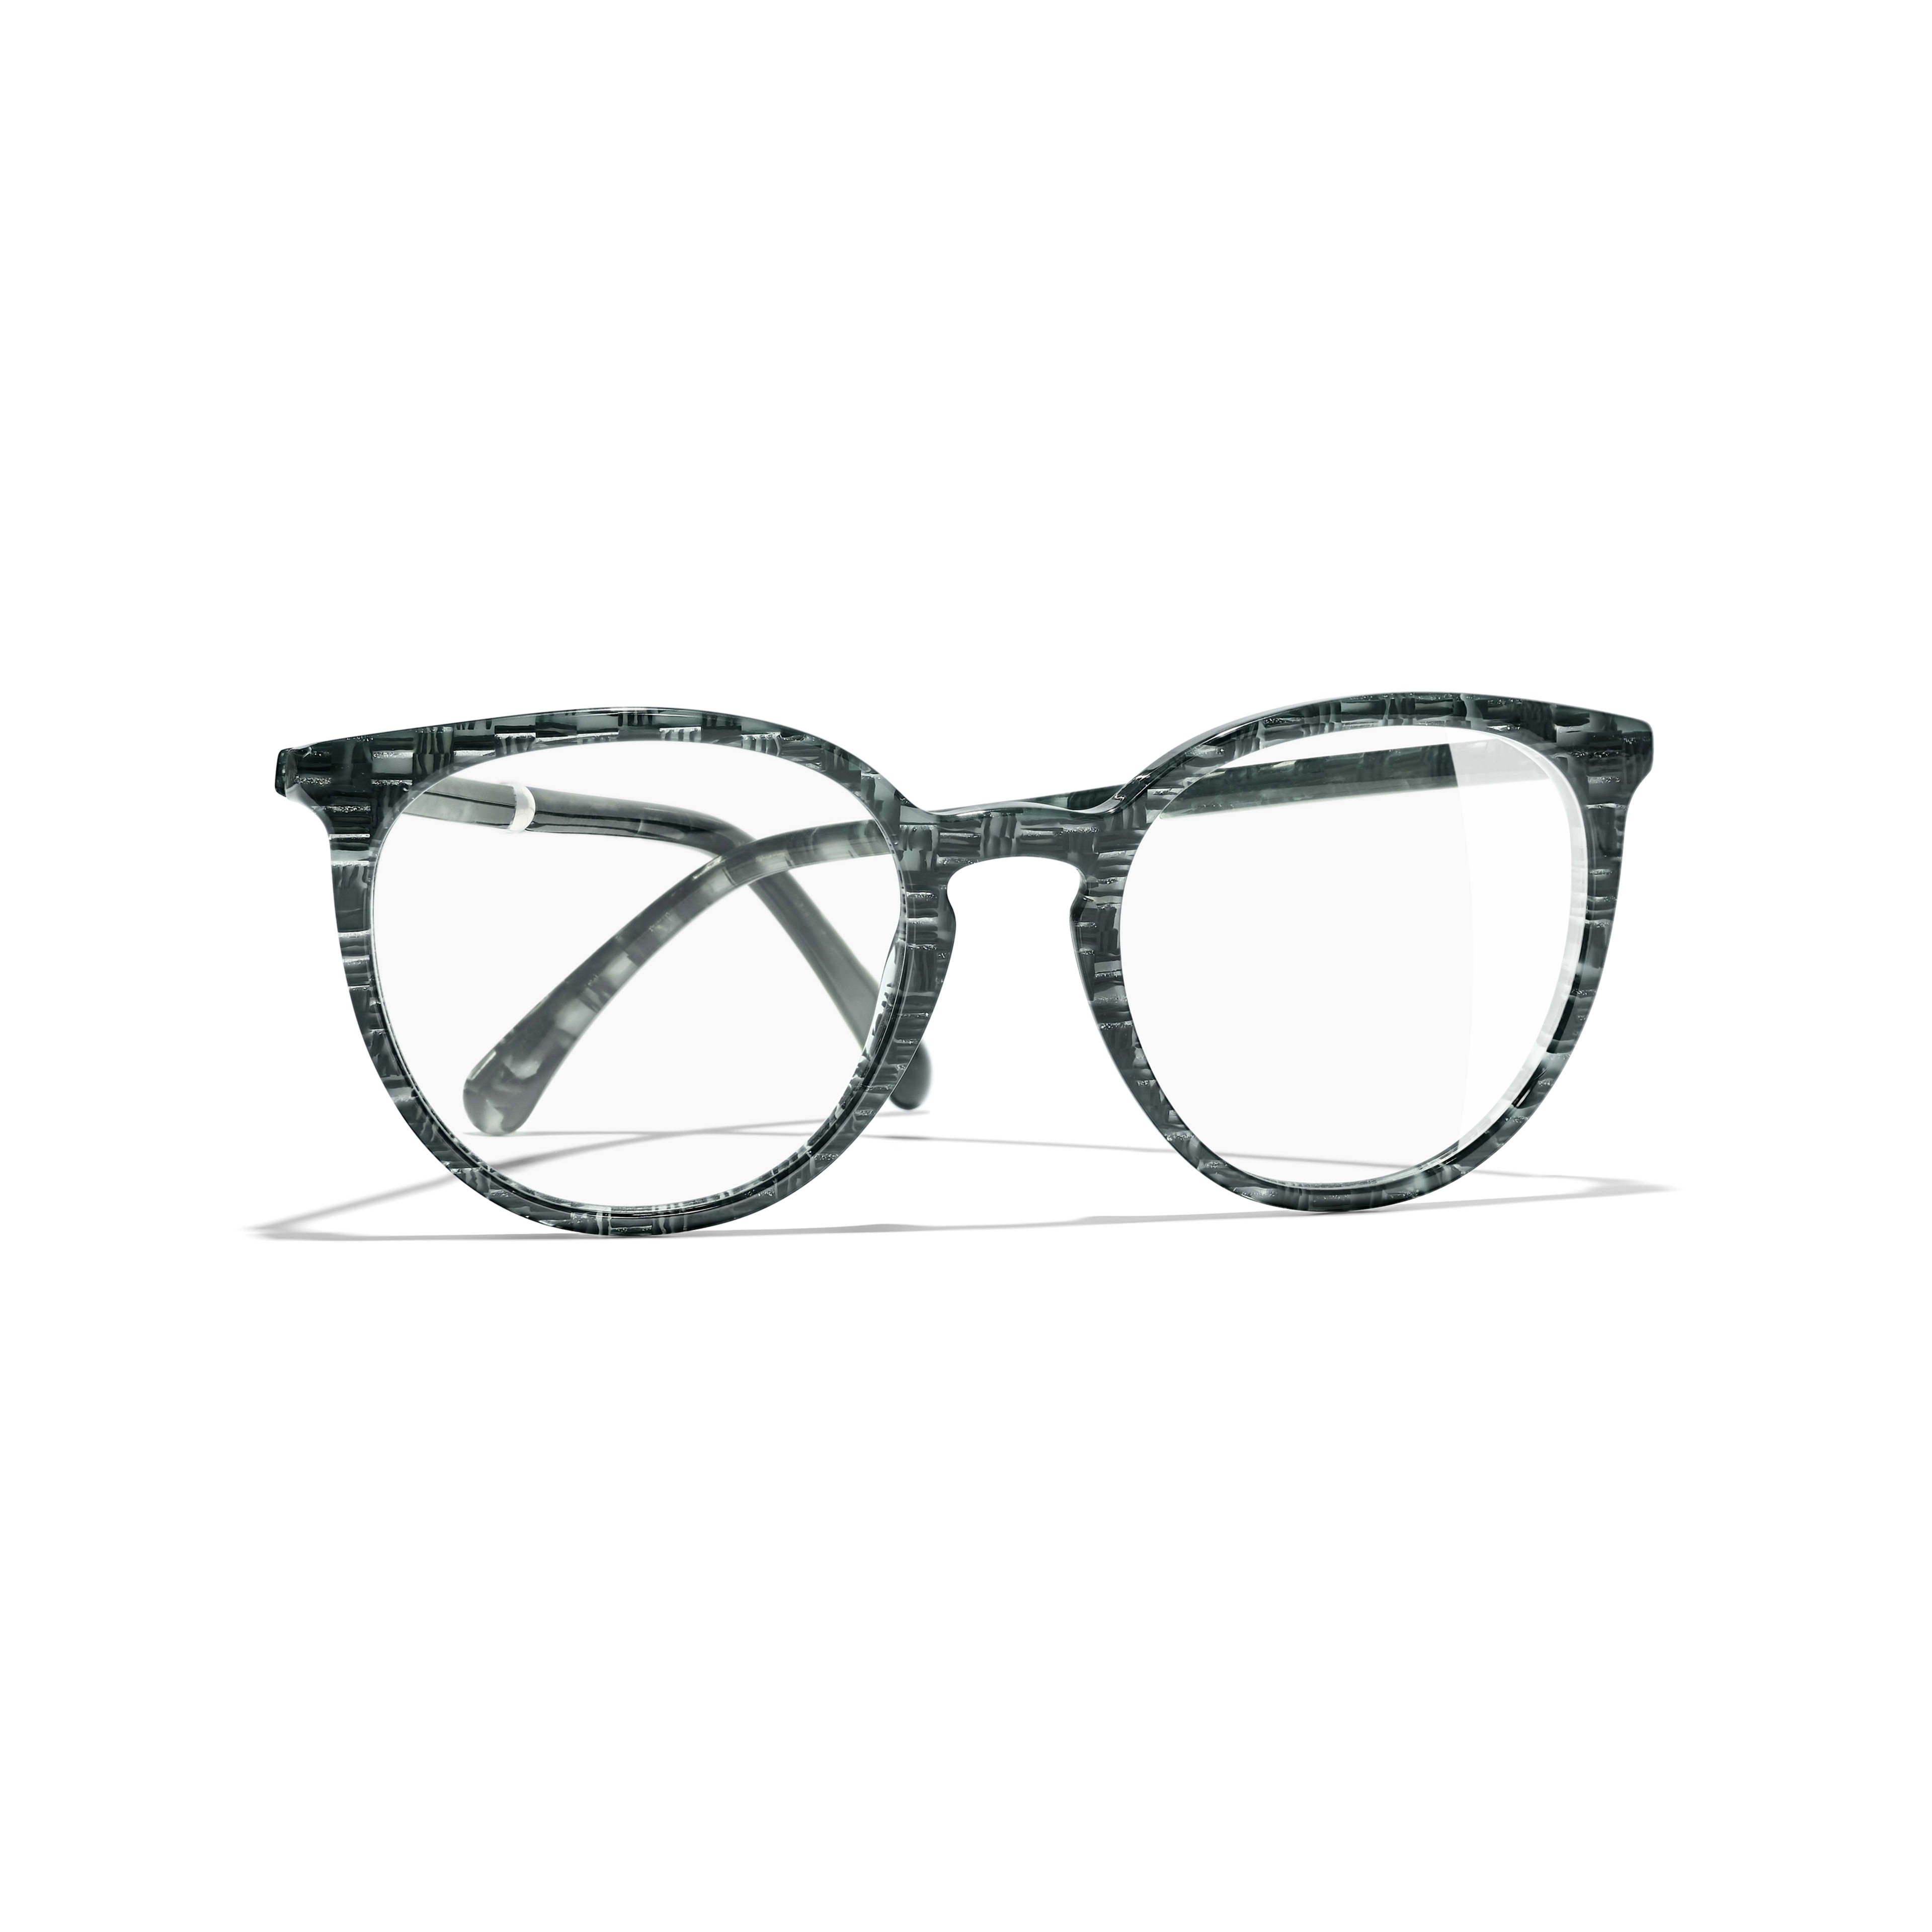 Pantos Eyeglasses - Glittered Green - Acetate & Imitation Pearls - Extra view - see full sized version